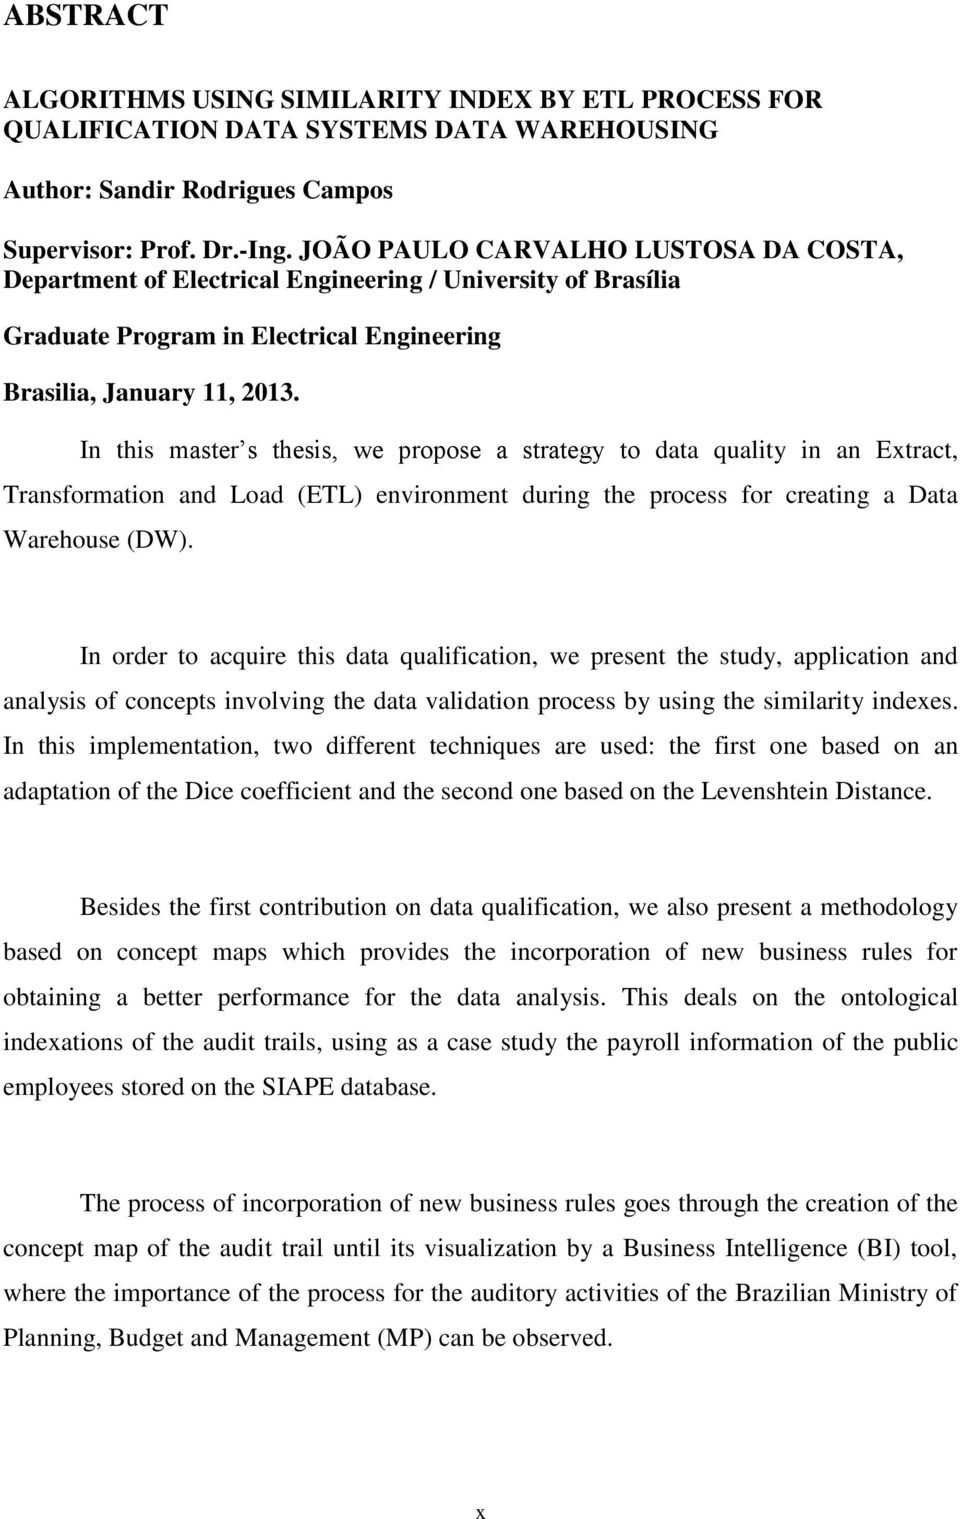 In this master s thesis, we propose a strategy to data quality in an Extract, Transformation and Load (ETL) environment during the process for creating a Data Warehouse (DW).